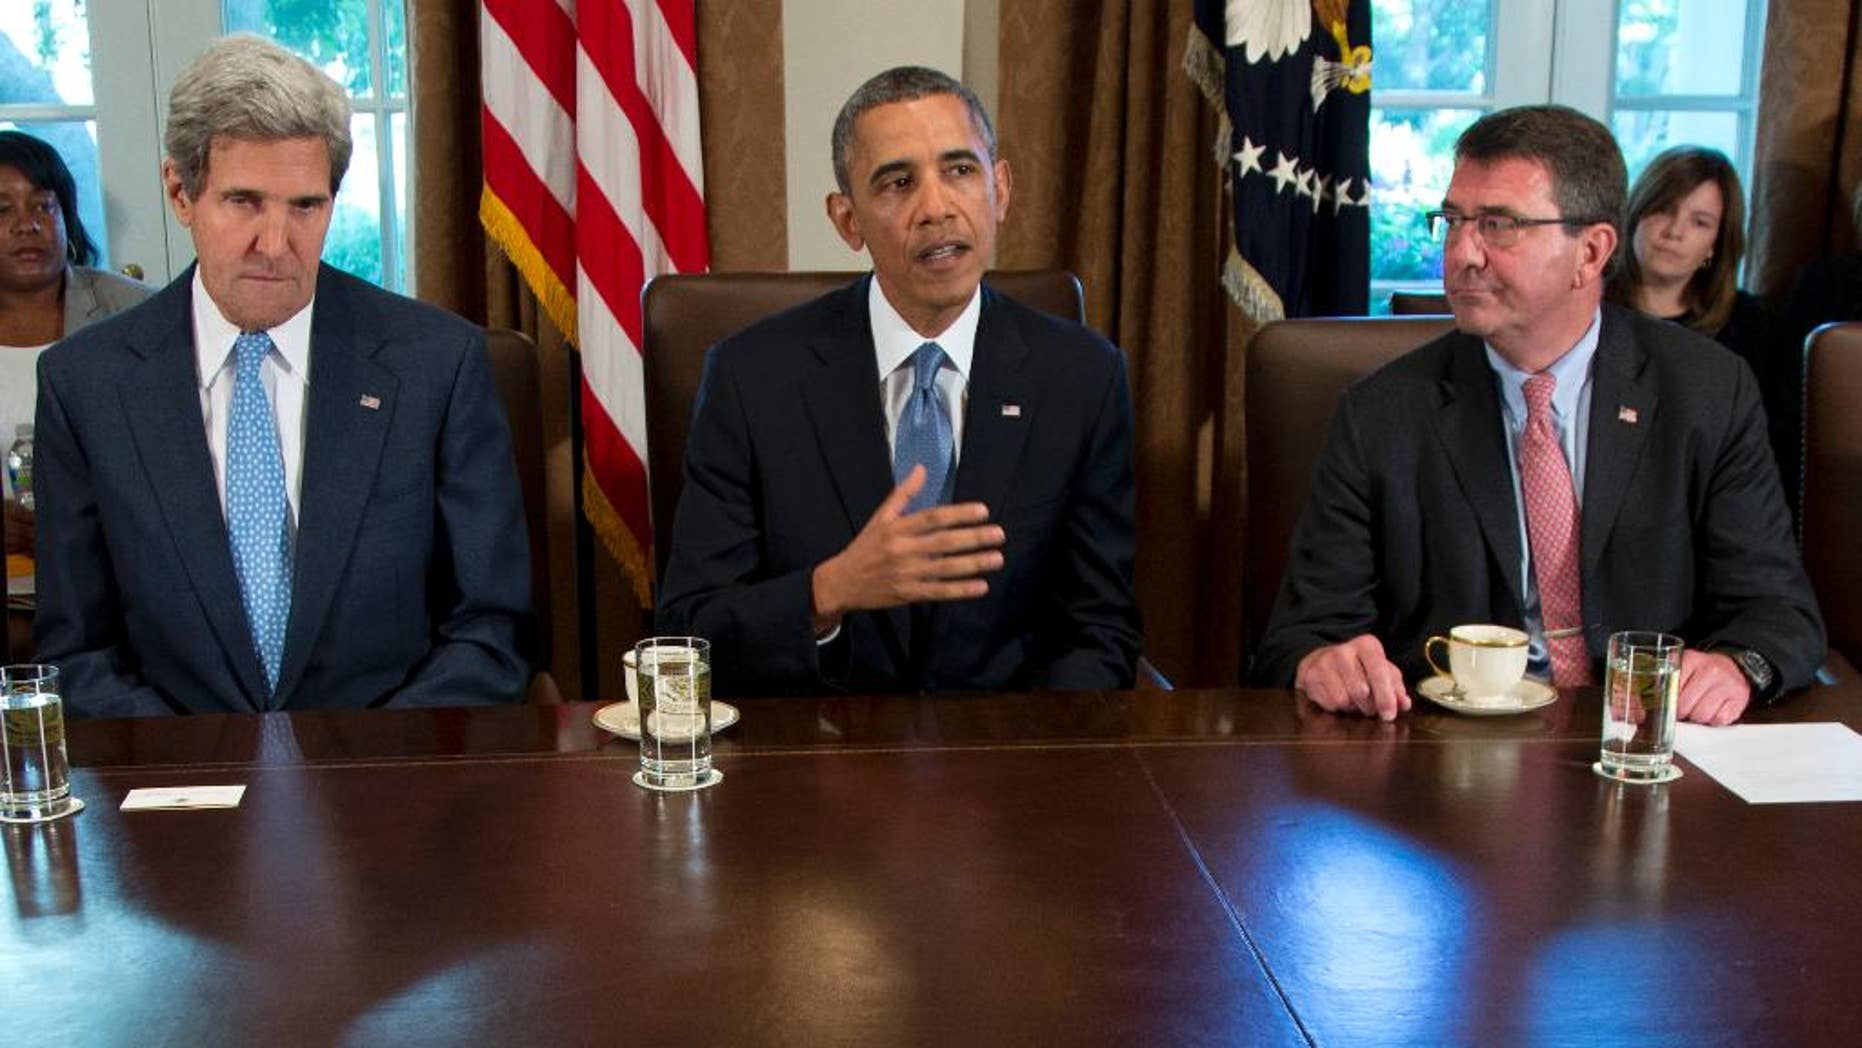 FILE - In this Sept. 30, 2013 file photo, then-Deputy Defense Secretary Ashton Carter, right, listens a President Barack Obama speaks to members of the media in the Cabinet Room of the White House in Washington. Carter has emerged as President Barack Obama's top candidate to become the next defense secretary, according to administration officials, putting him in line to take over a sprawling department that has had an uneasy relationship with the White House. Secretary of State John Kerry is at left.  (AP Photo/Carolyn Kaster, File)